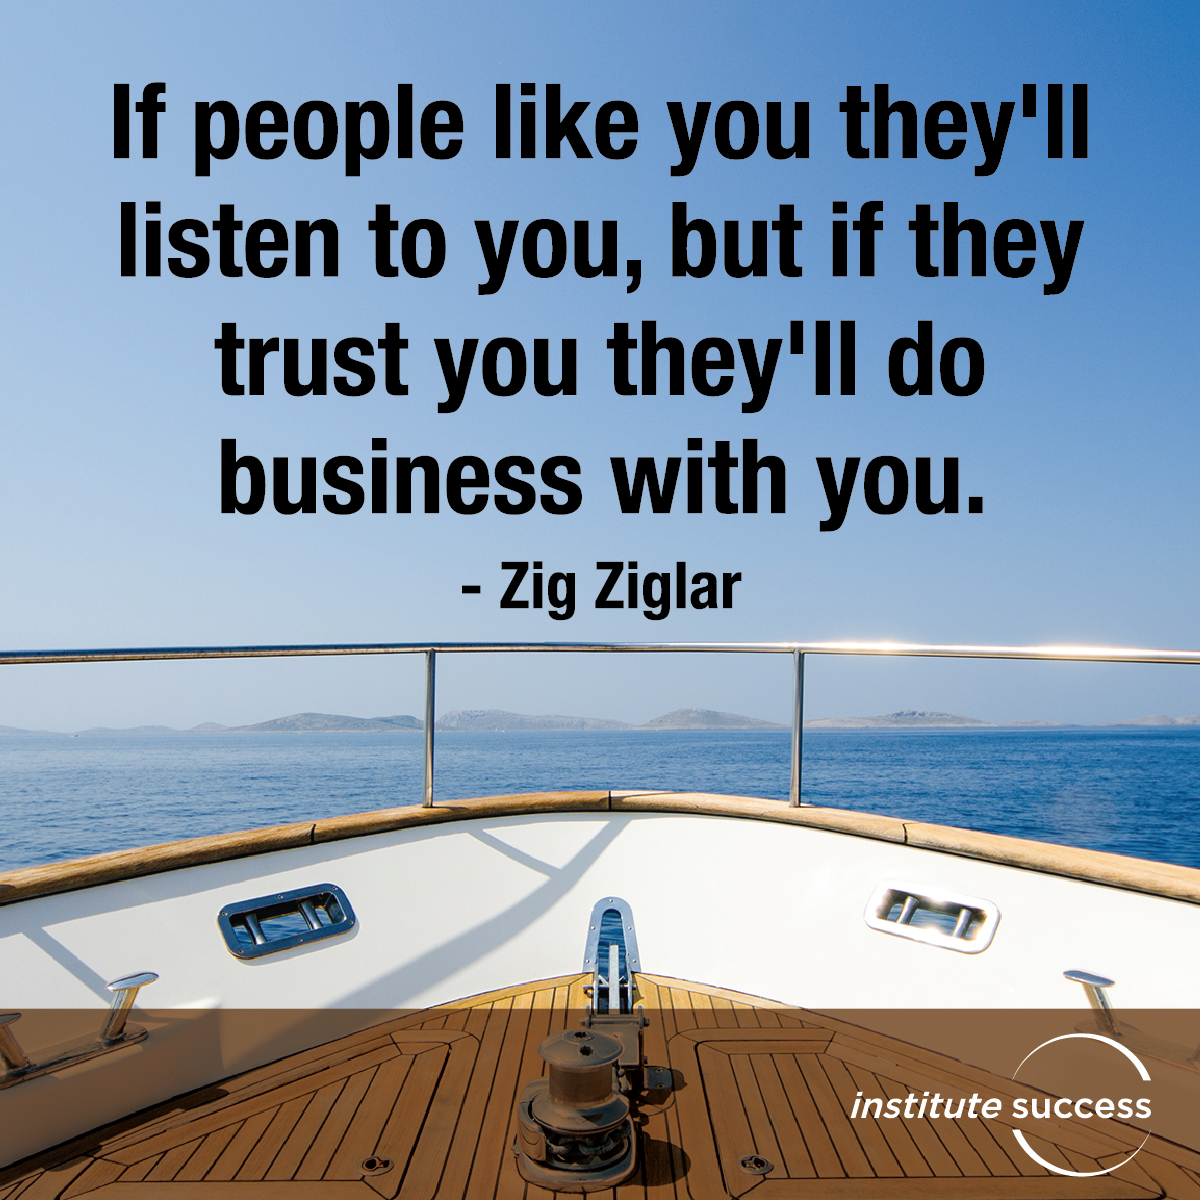 If people like you they'll listen to you, but if they trust you they'll do business with you – Zig Ziglar